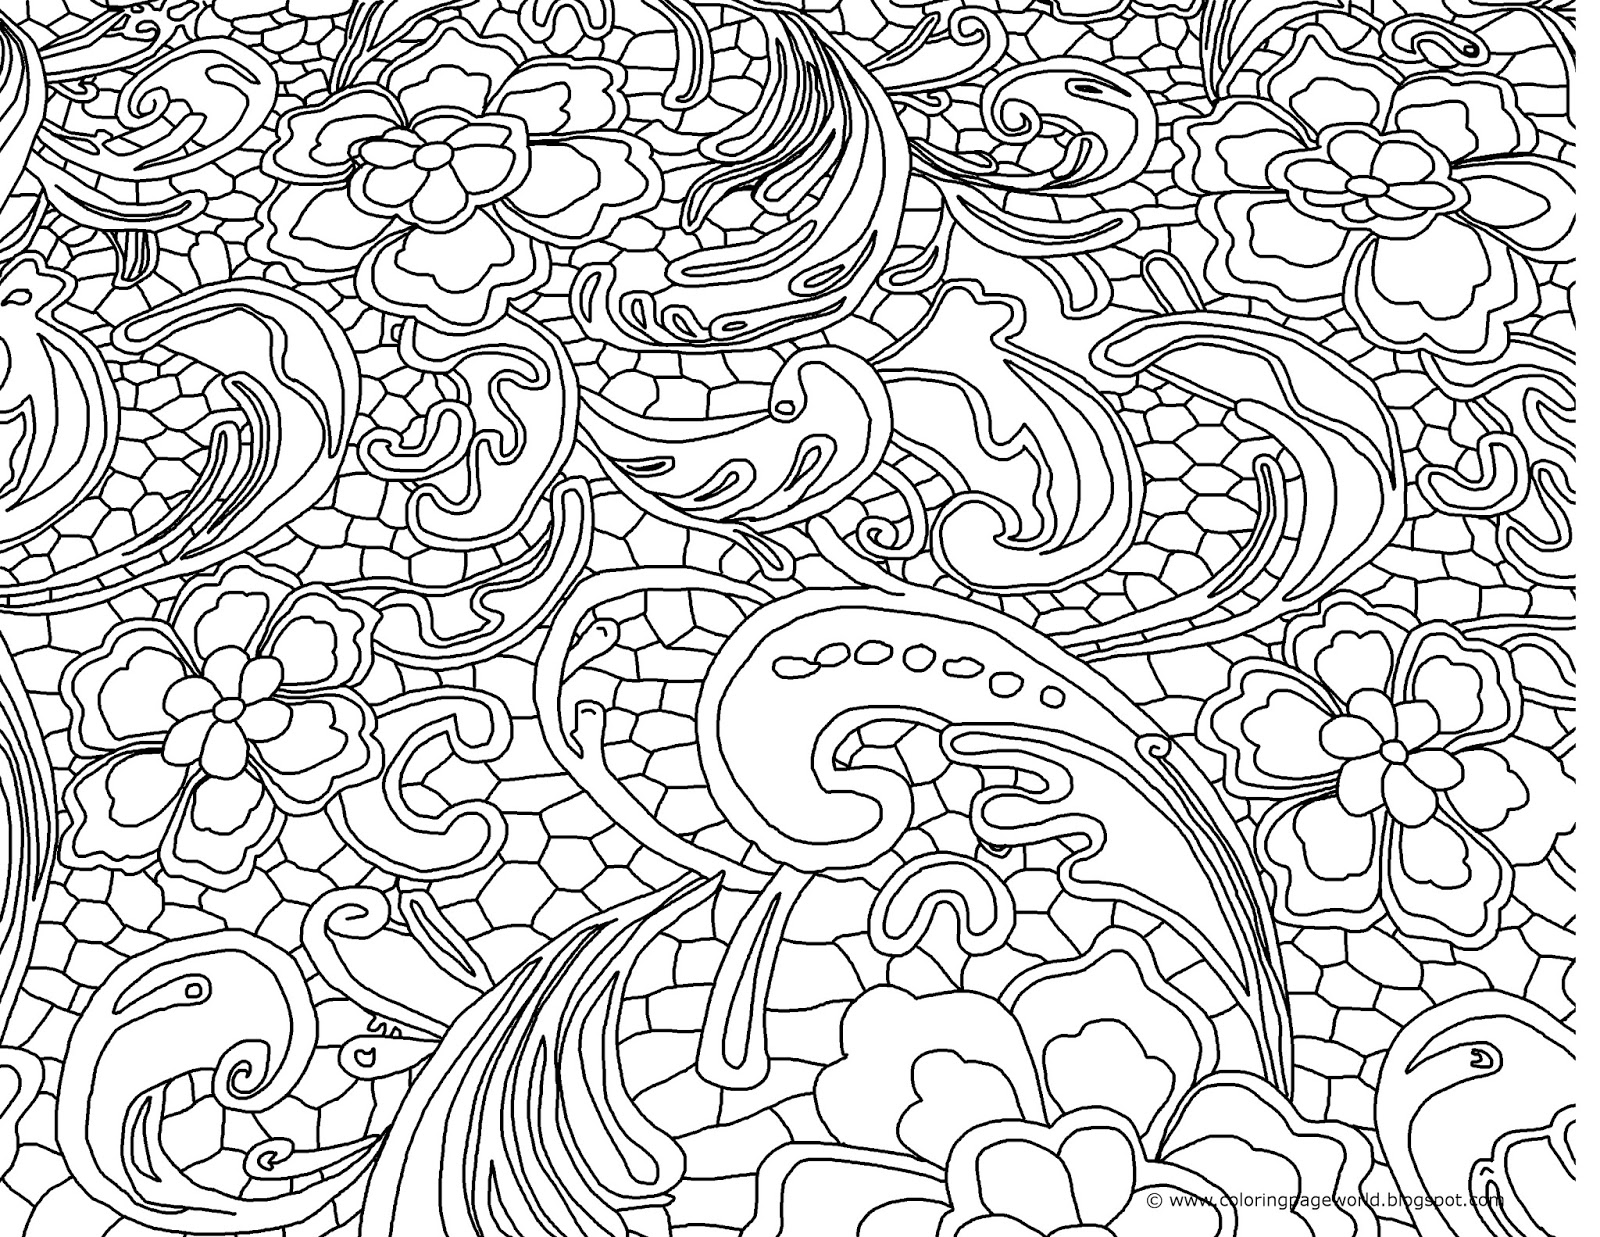 Coloring Page World: Flowery (Landscape